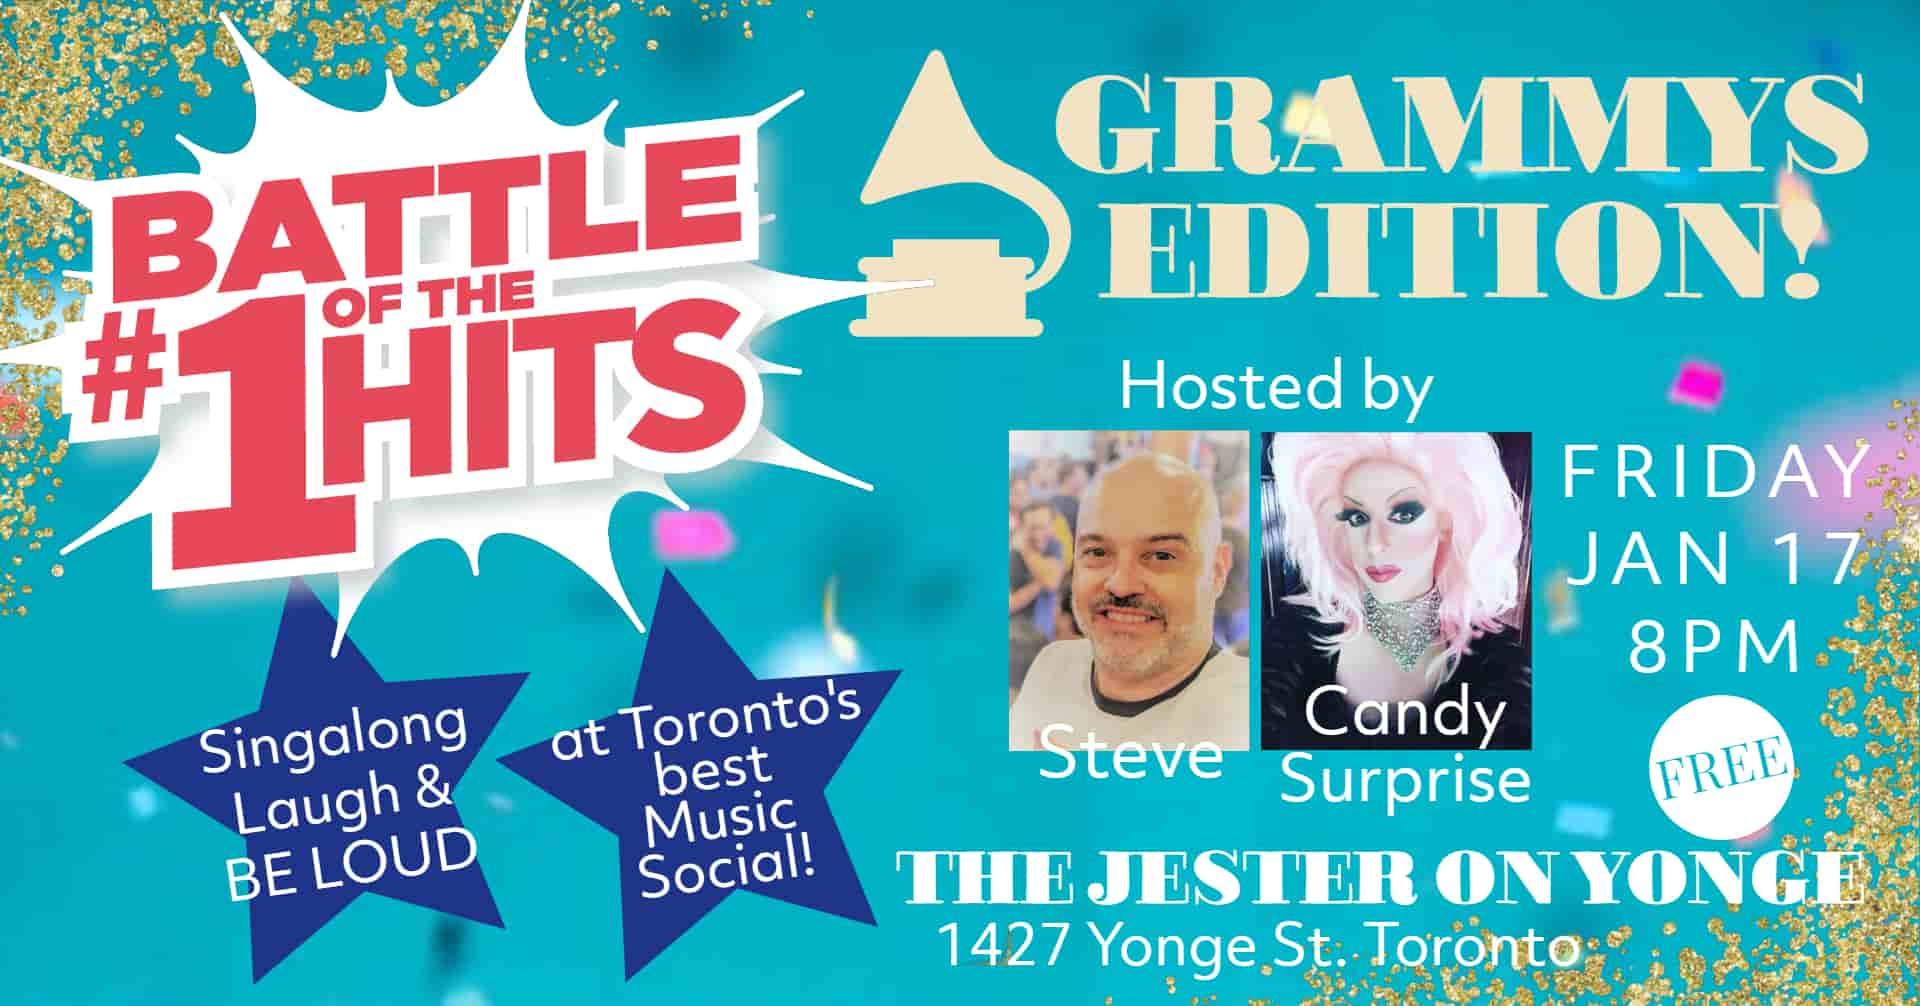 Battle of the #1 Hits Grammys Edition, Live at the Jester on Yonge in Toronto